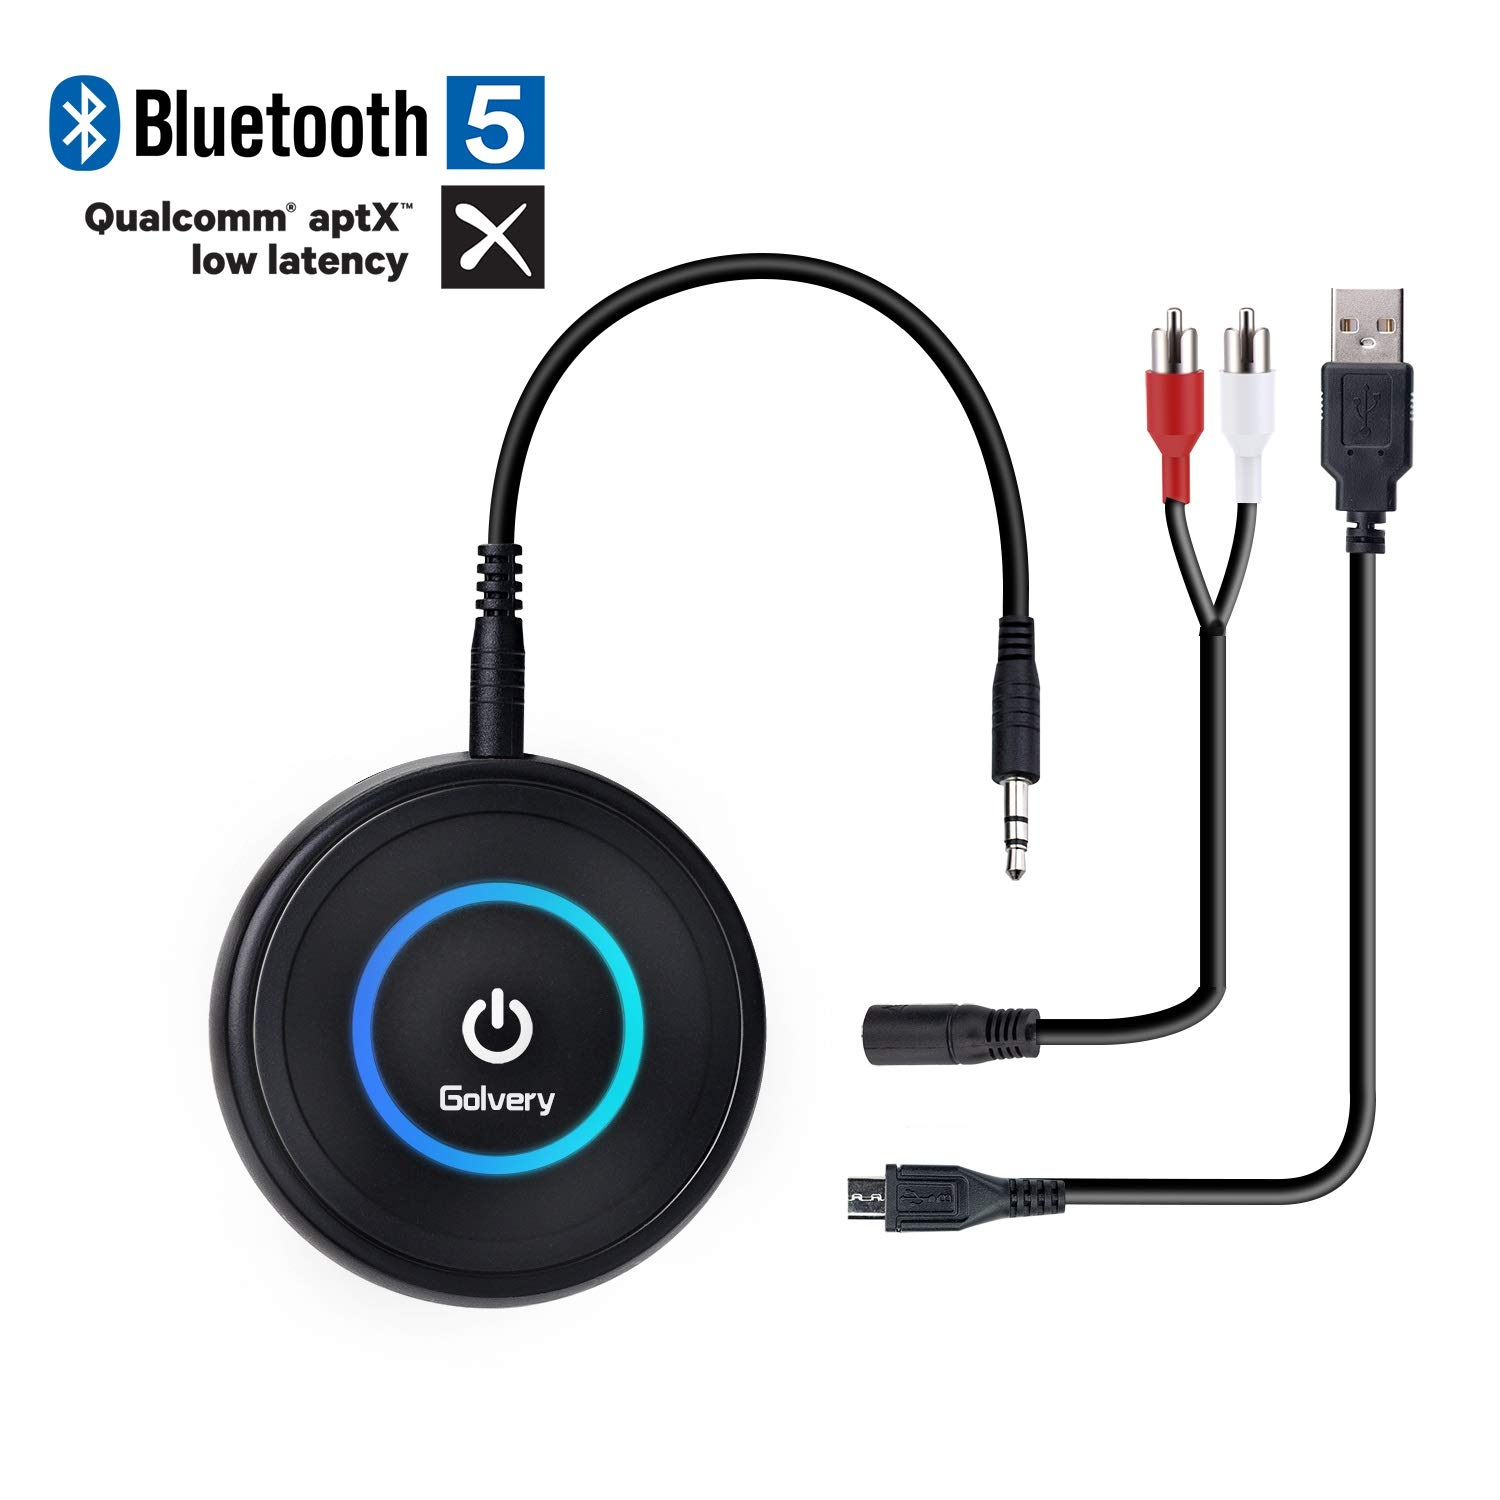 Golvery Bluetooth 5 0 Transmitter and Receiver - 2 in 1 Wireless 3 5mm Aux  Bluetooth Audio Adapter - aptX Low Latency, Enjoy HiFi Music - for Home TV,